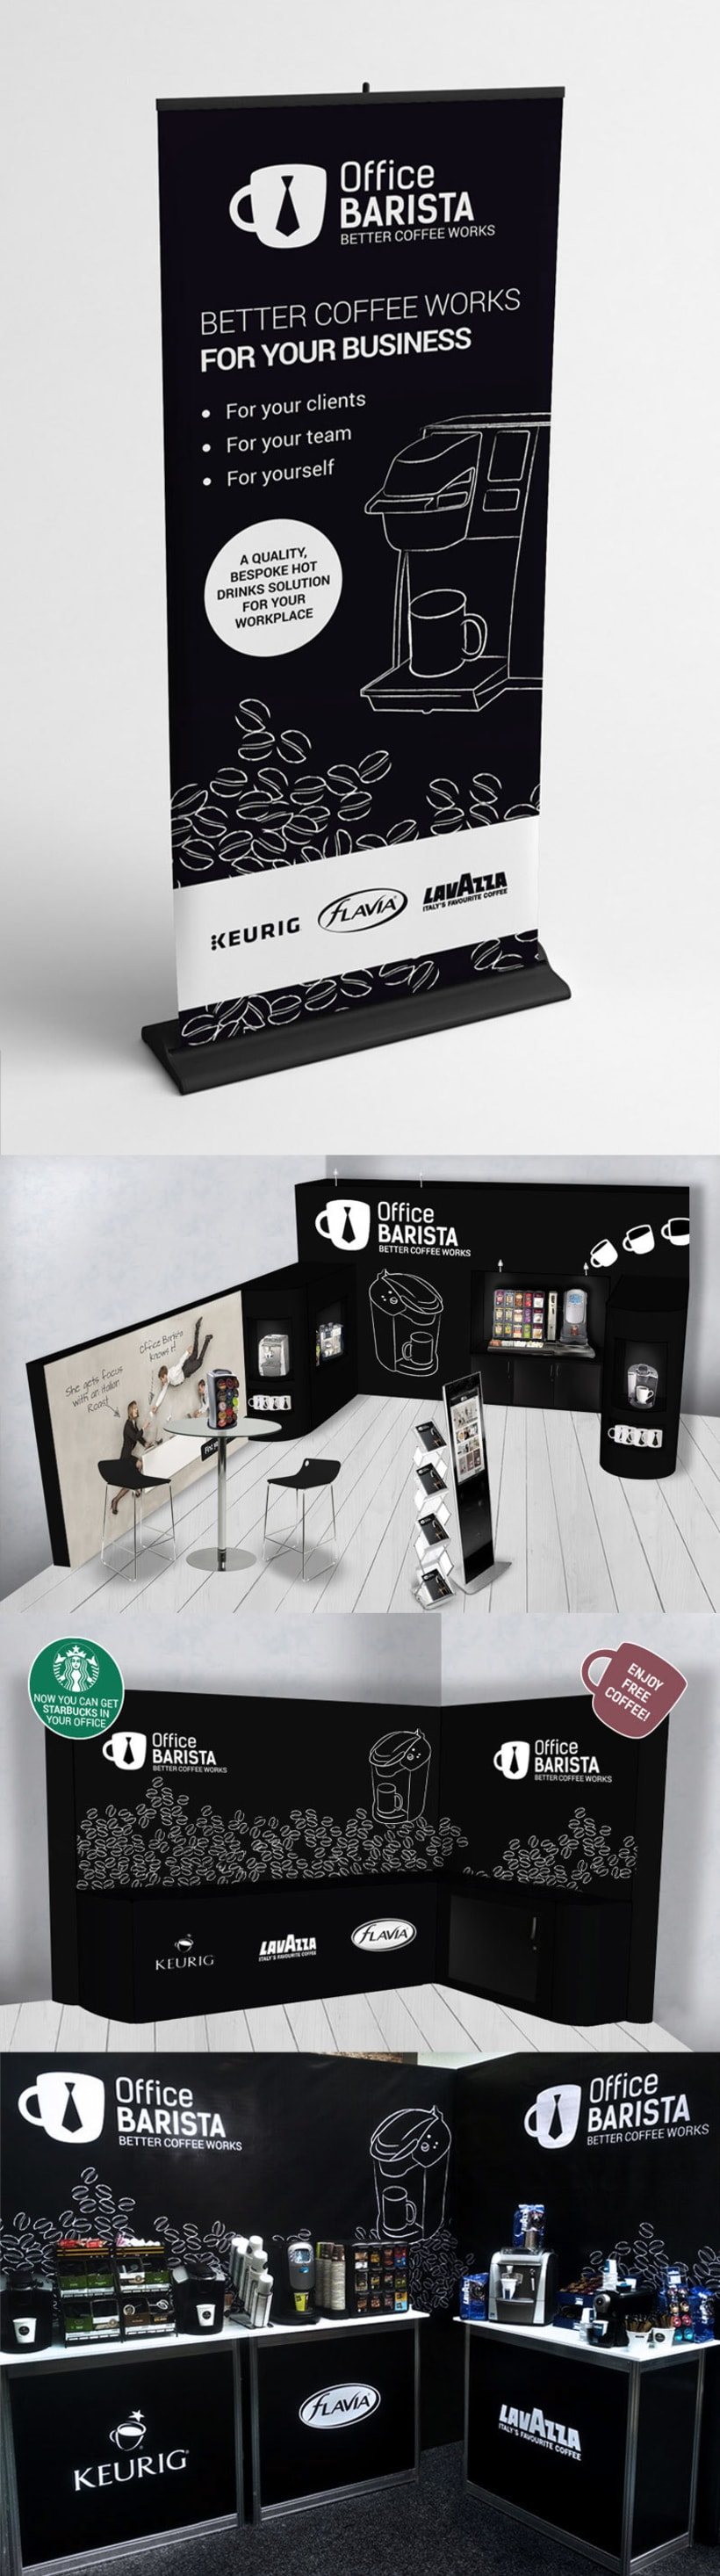 Office Barista. Banner, Proposals and Stand. 0